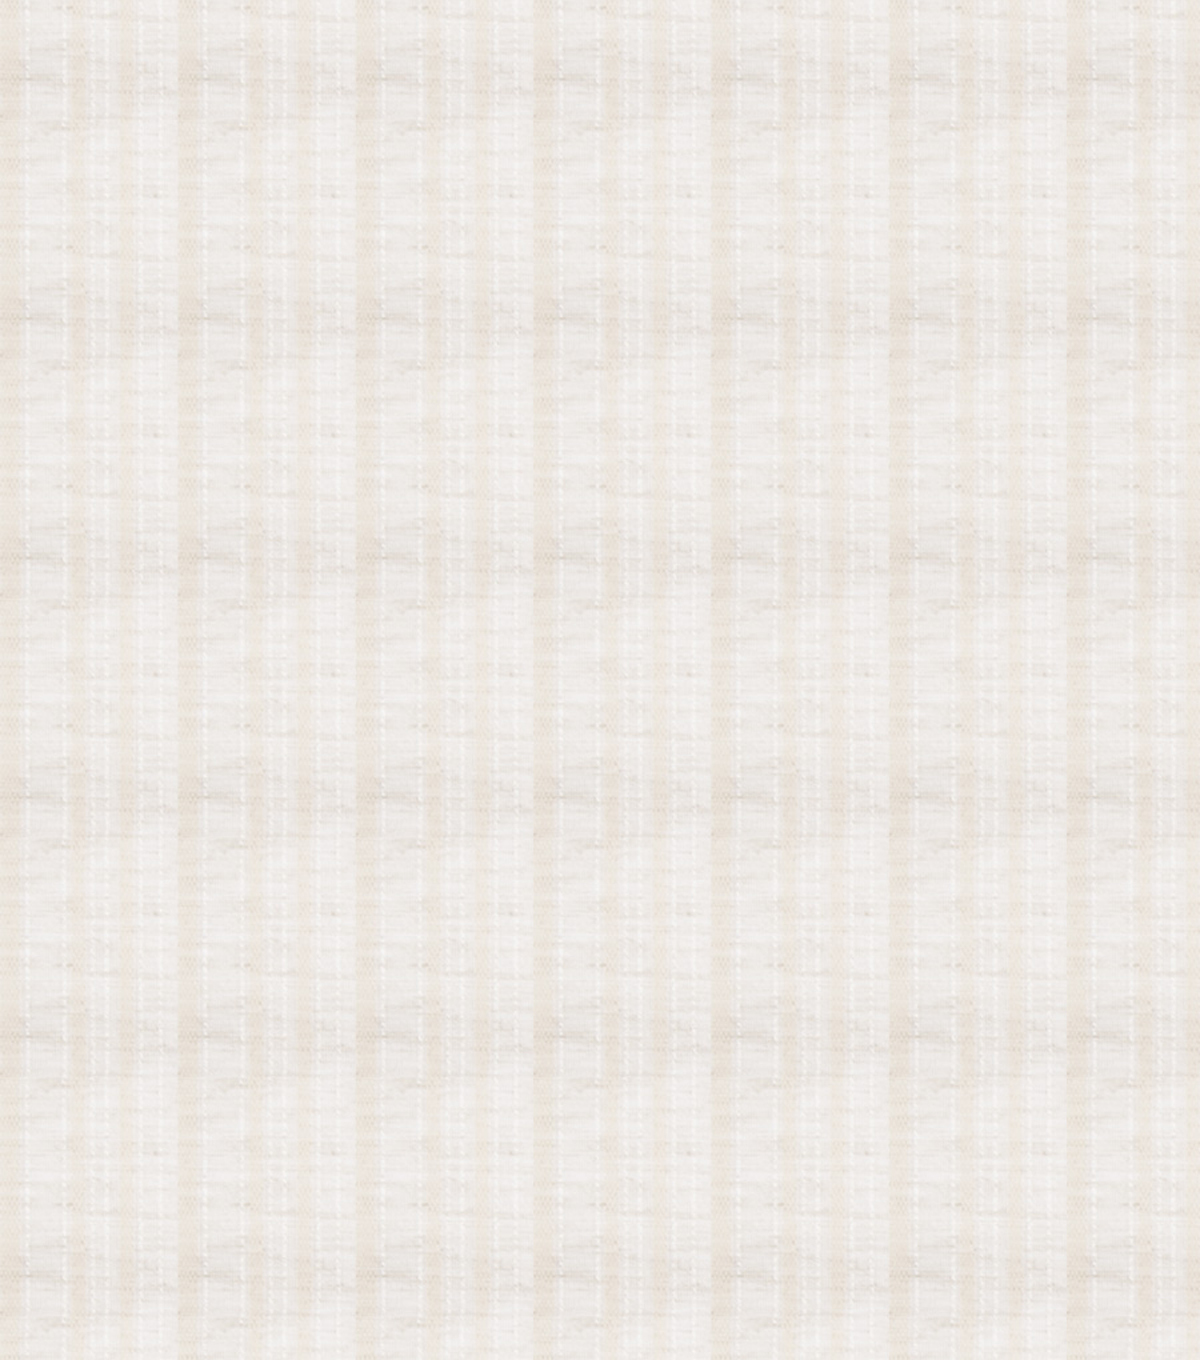 Home Decor 8\u0022x8\u0022 Fabric Swatch-Eaton Square Belita Camel